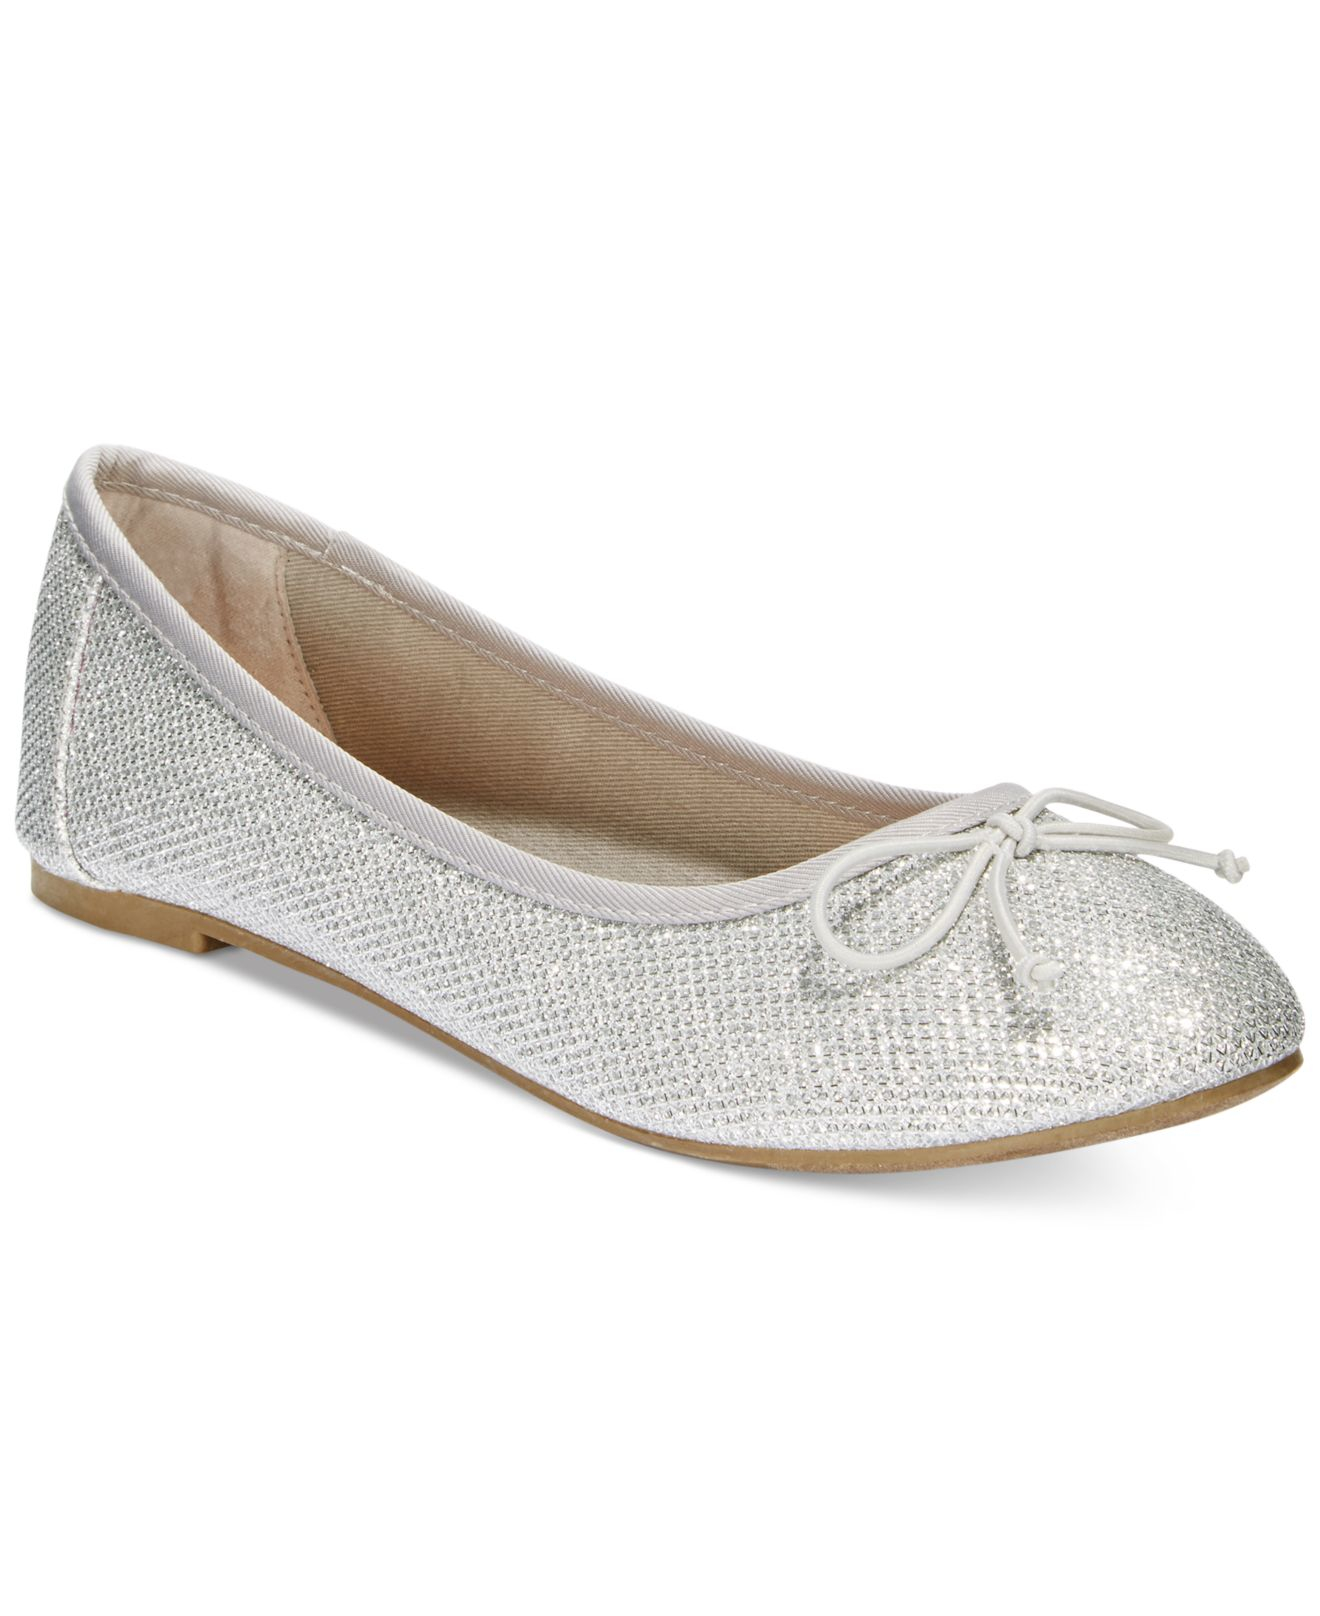 Women's Flats: Free Shipping on orders over $45 at cuttackfirstboutique.cf - Your Online Women's Shoes Store! Get 5% in rewards with Club O!